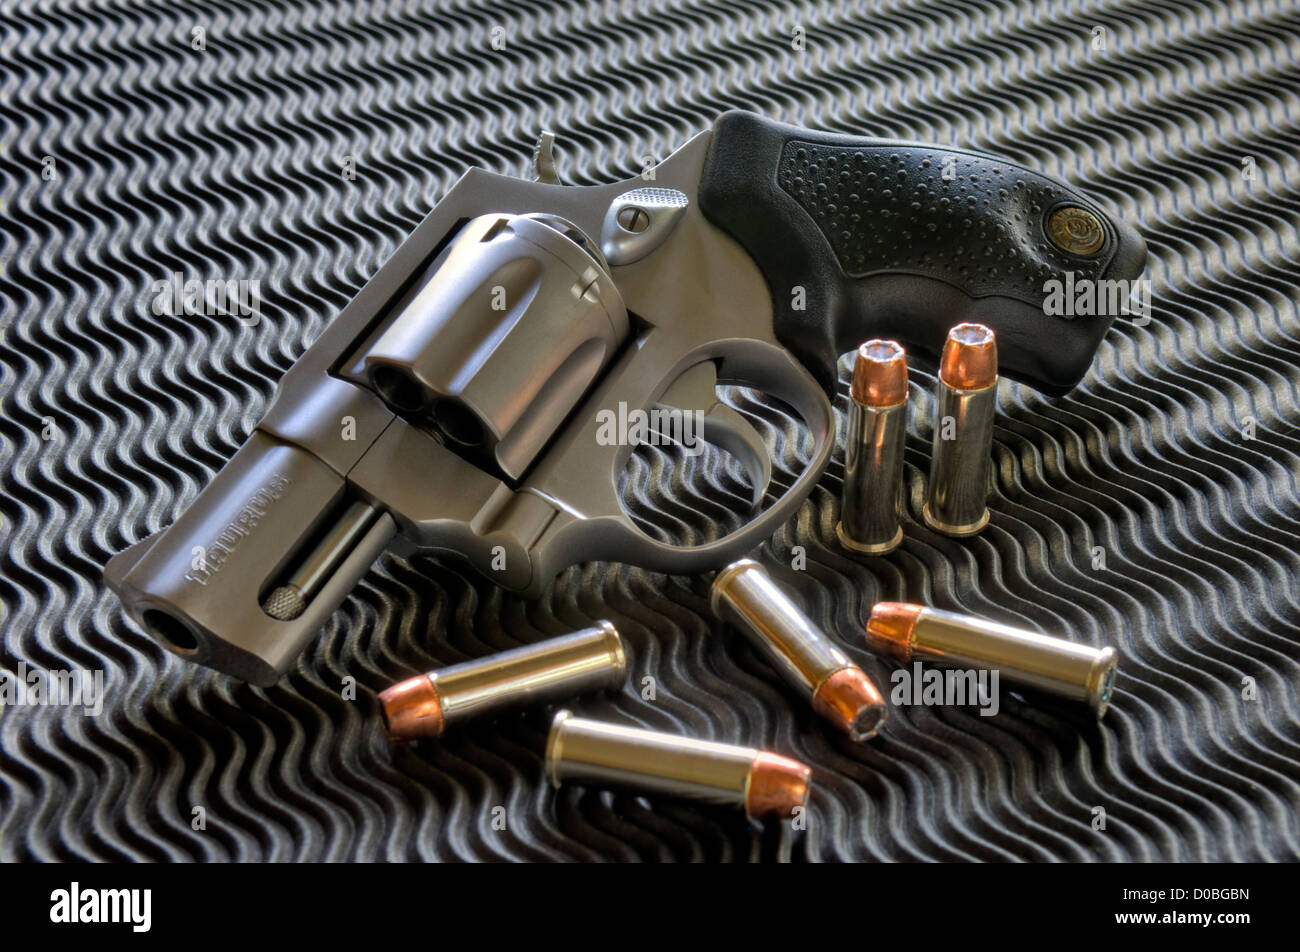 Taurus Model 856 Snub Nose 38 Special Revolver Stock Photo